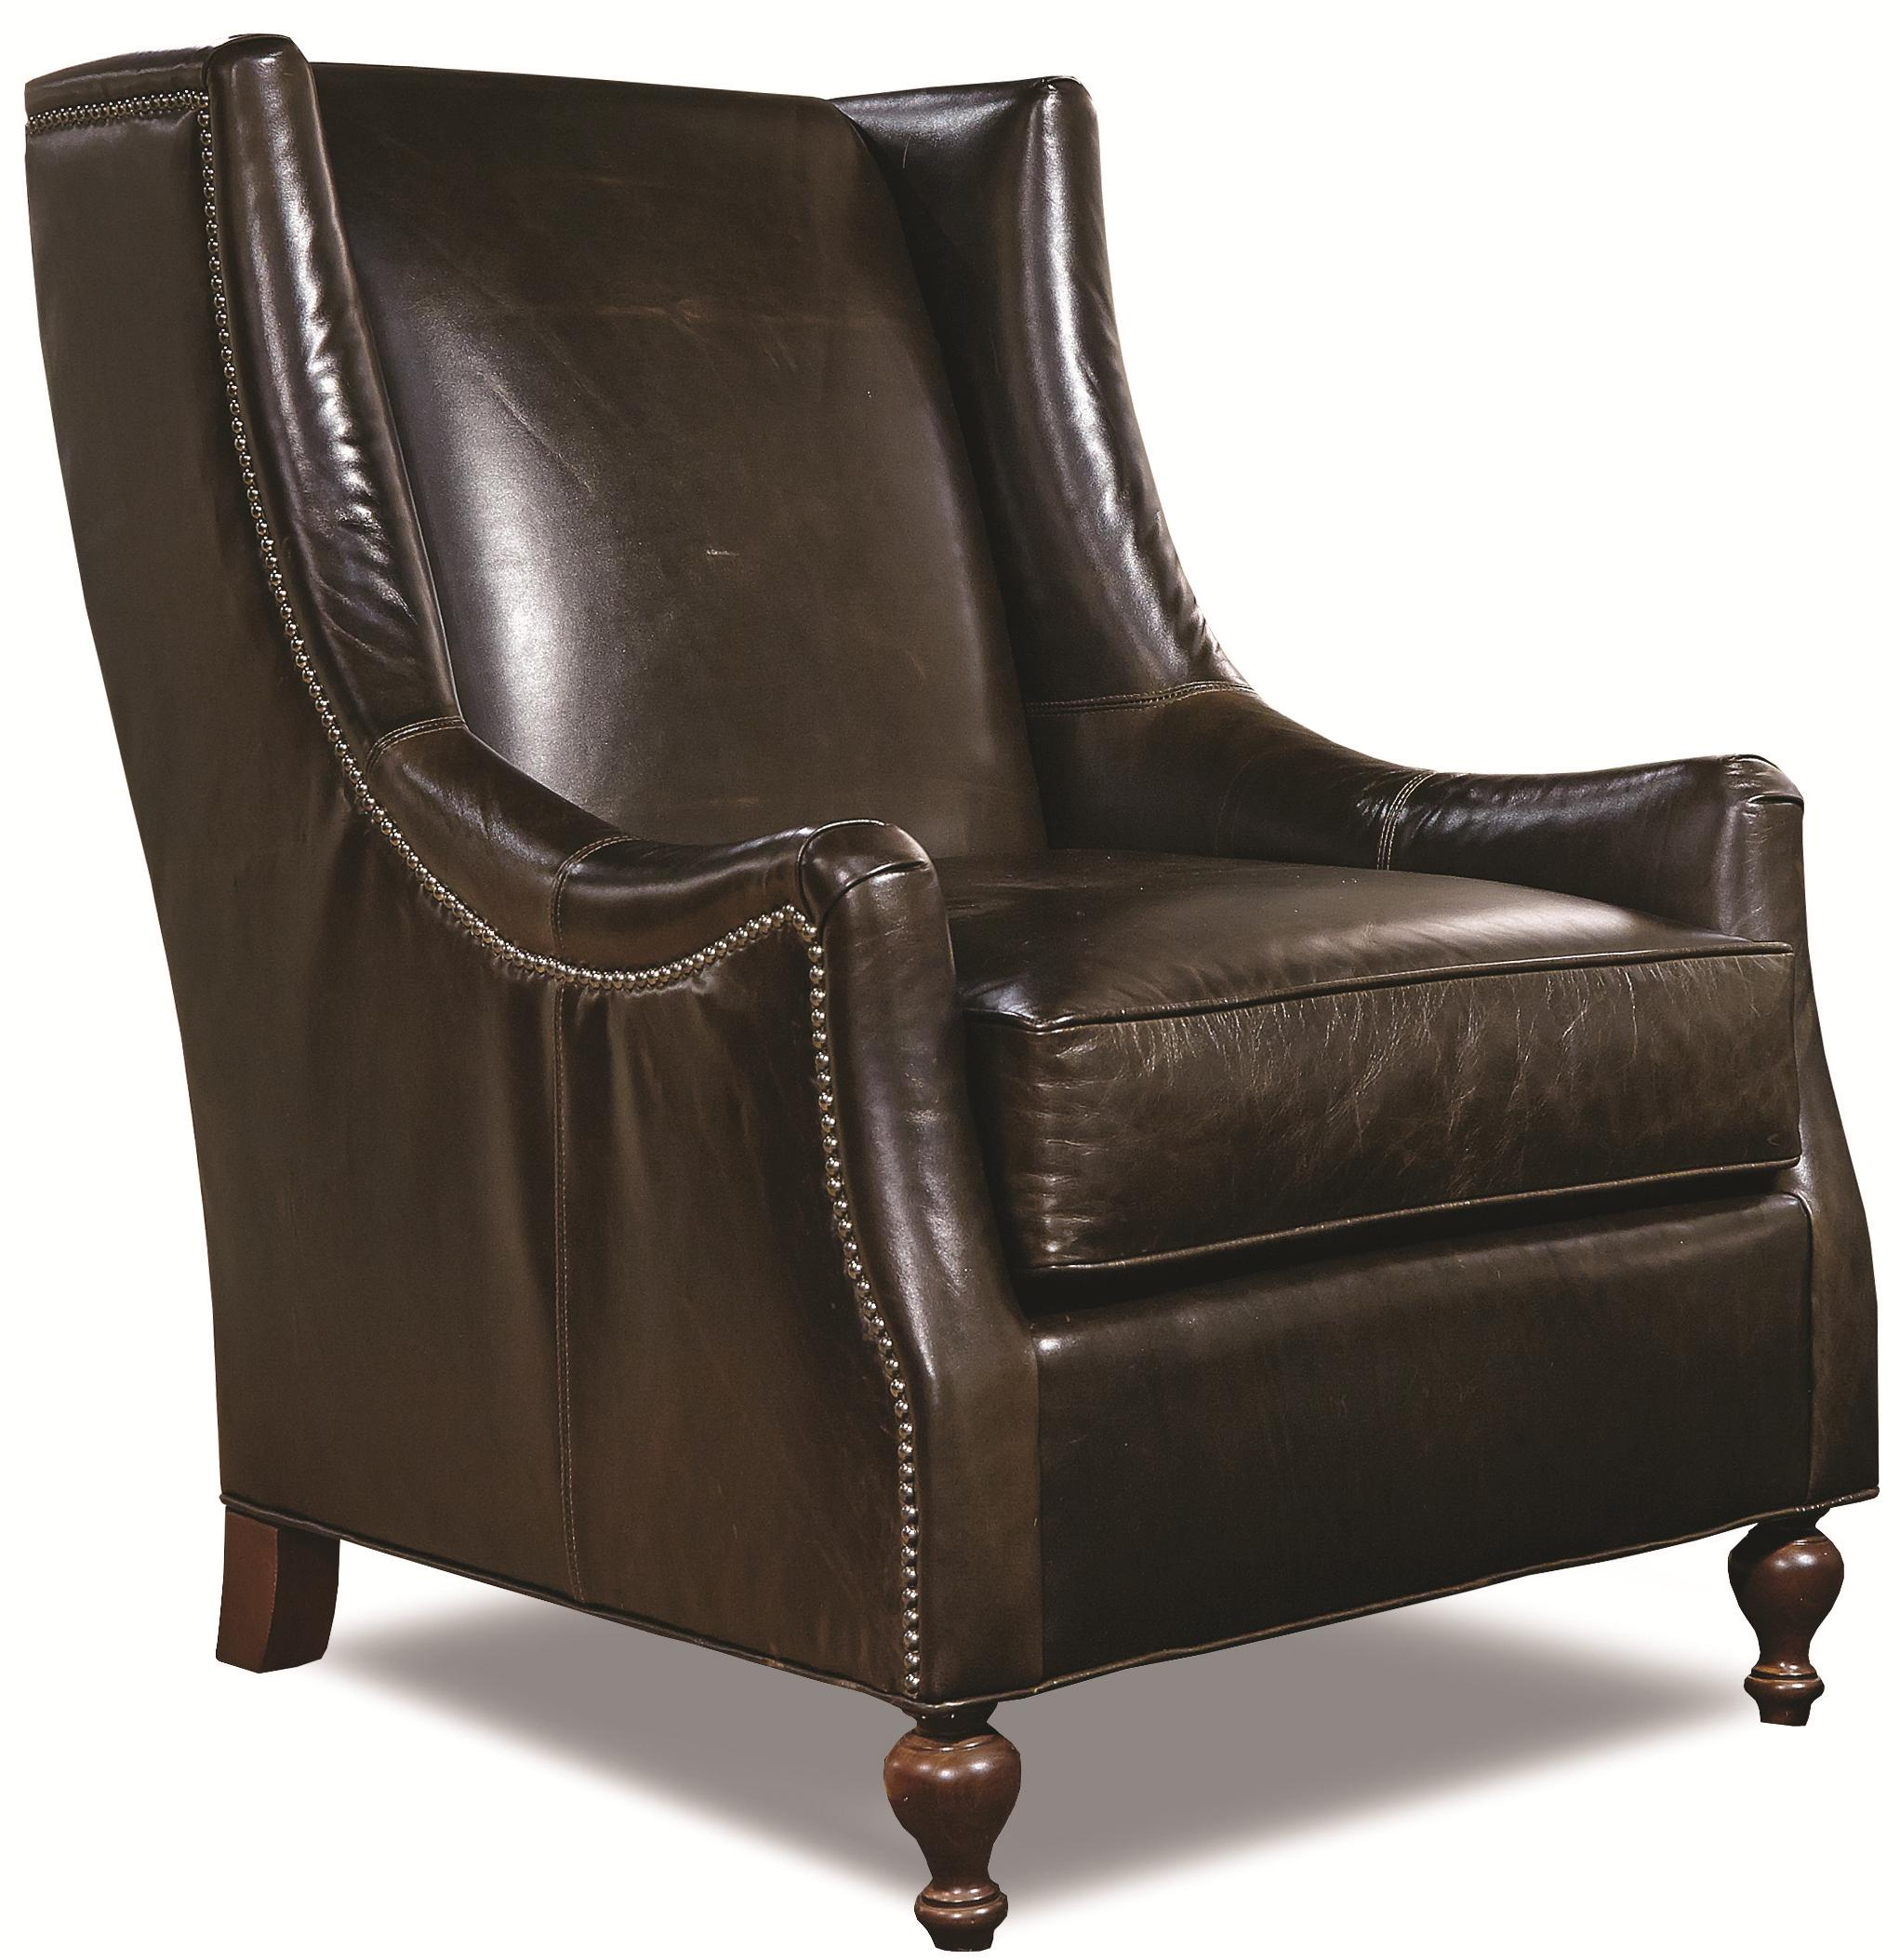 7497 Traditional Accent Chair by Geoffrey Alexander at Sprintz Furniture